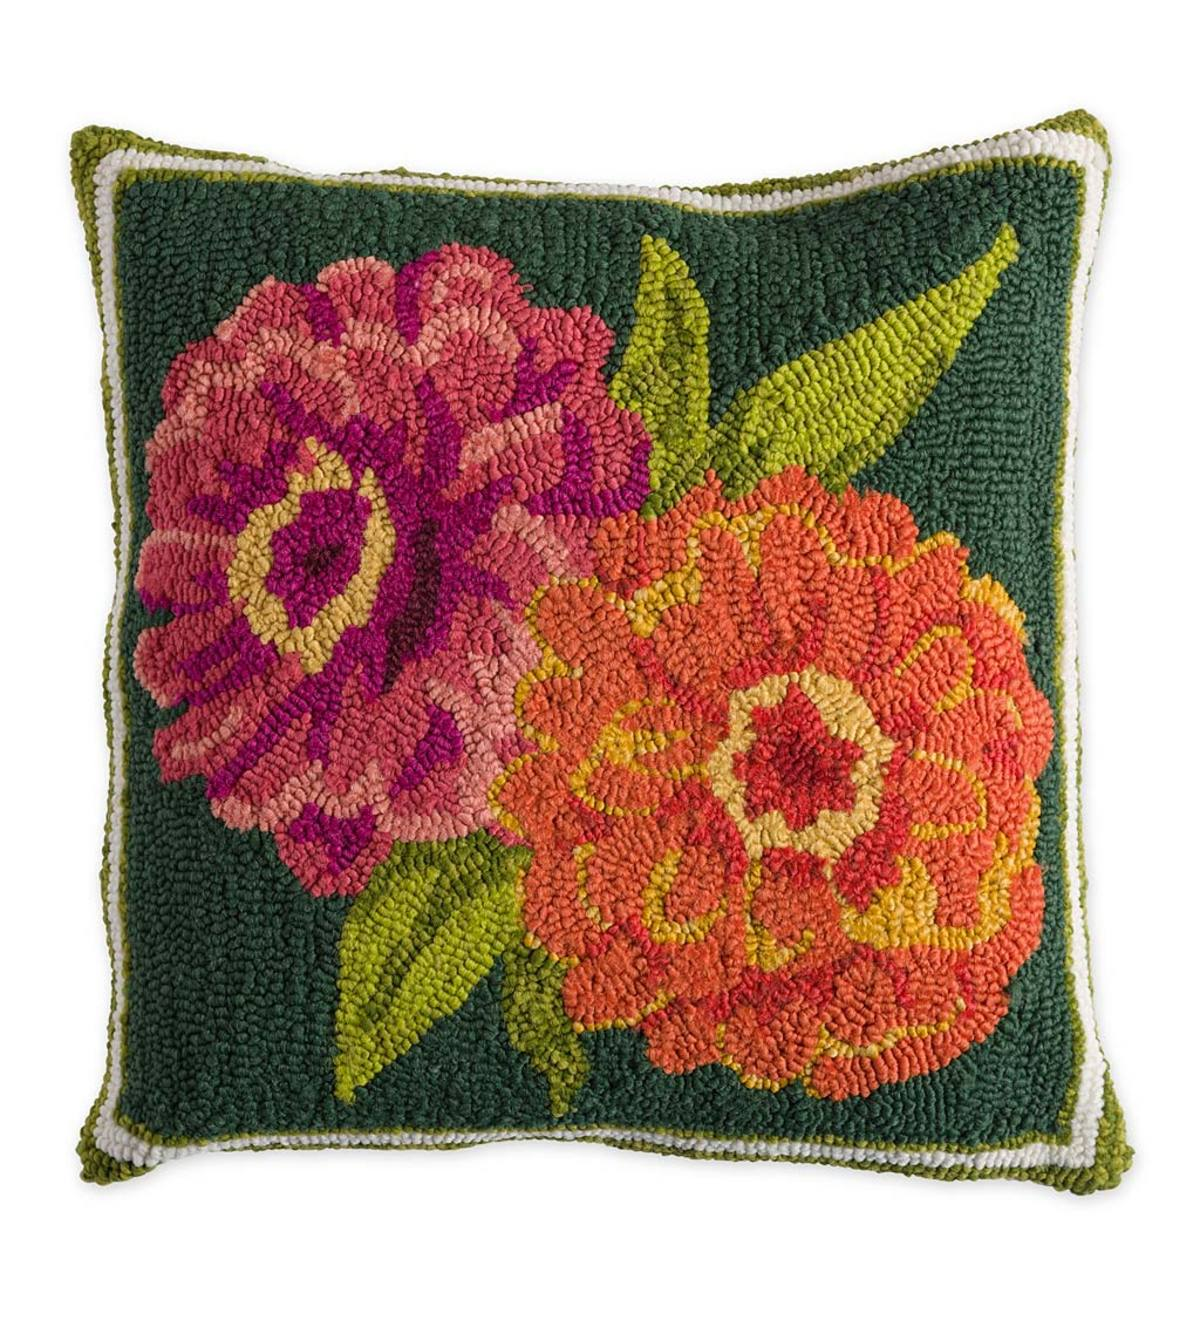 Indoor Outdoor Double Zinnia Hooked Throw Pillow Plowhearth